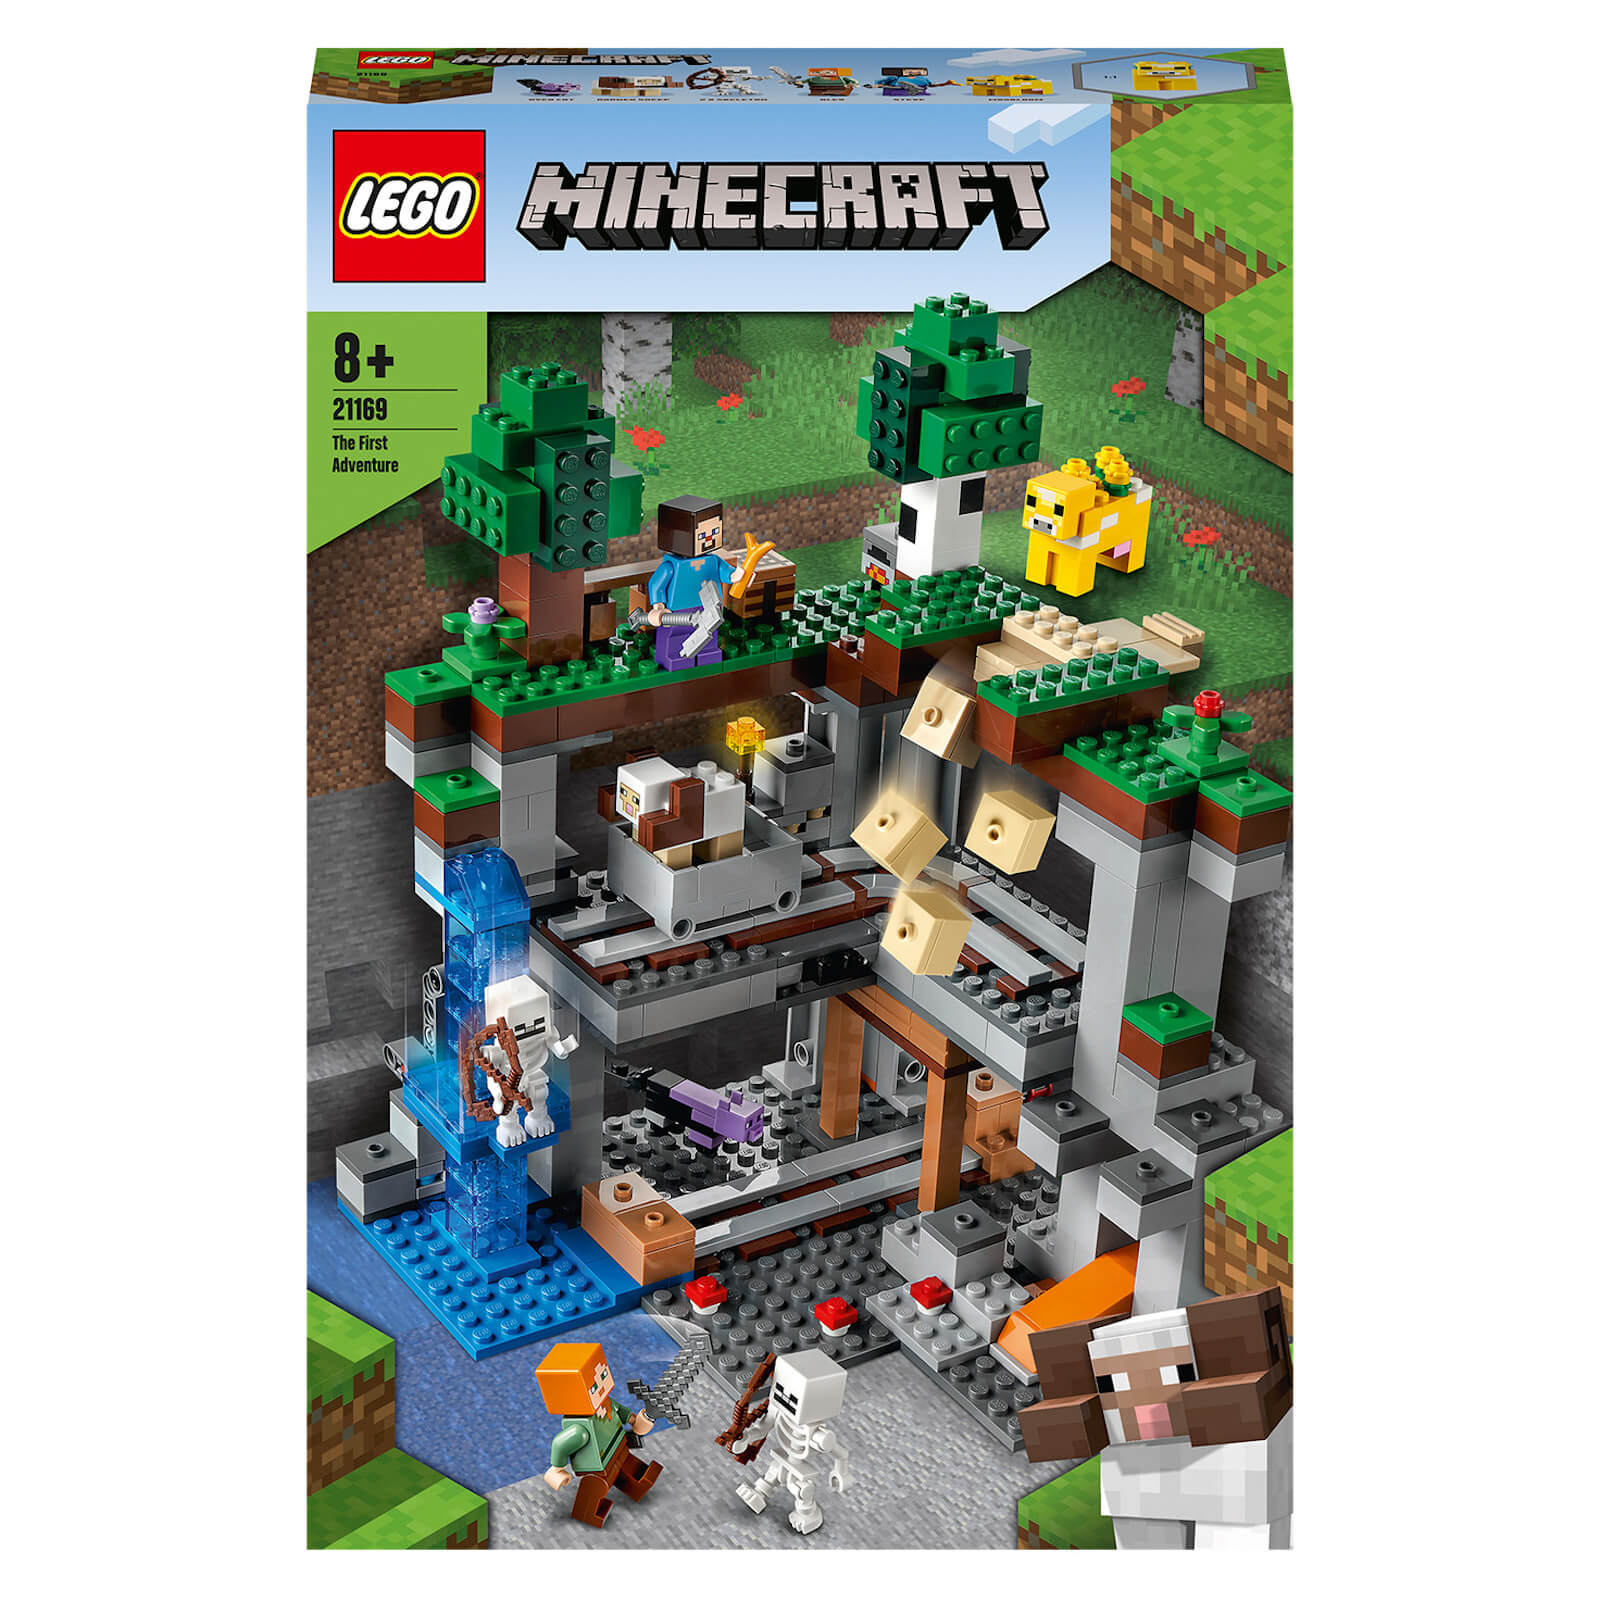 Image of Lego Minecraft The First Adventure Construction Set